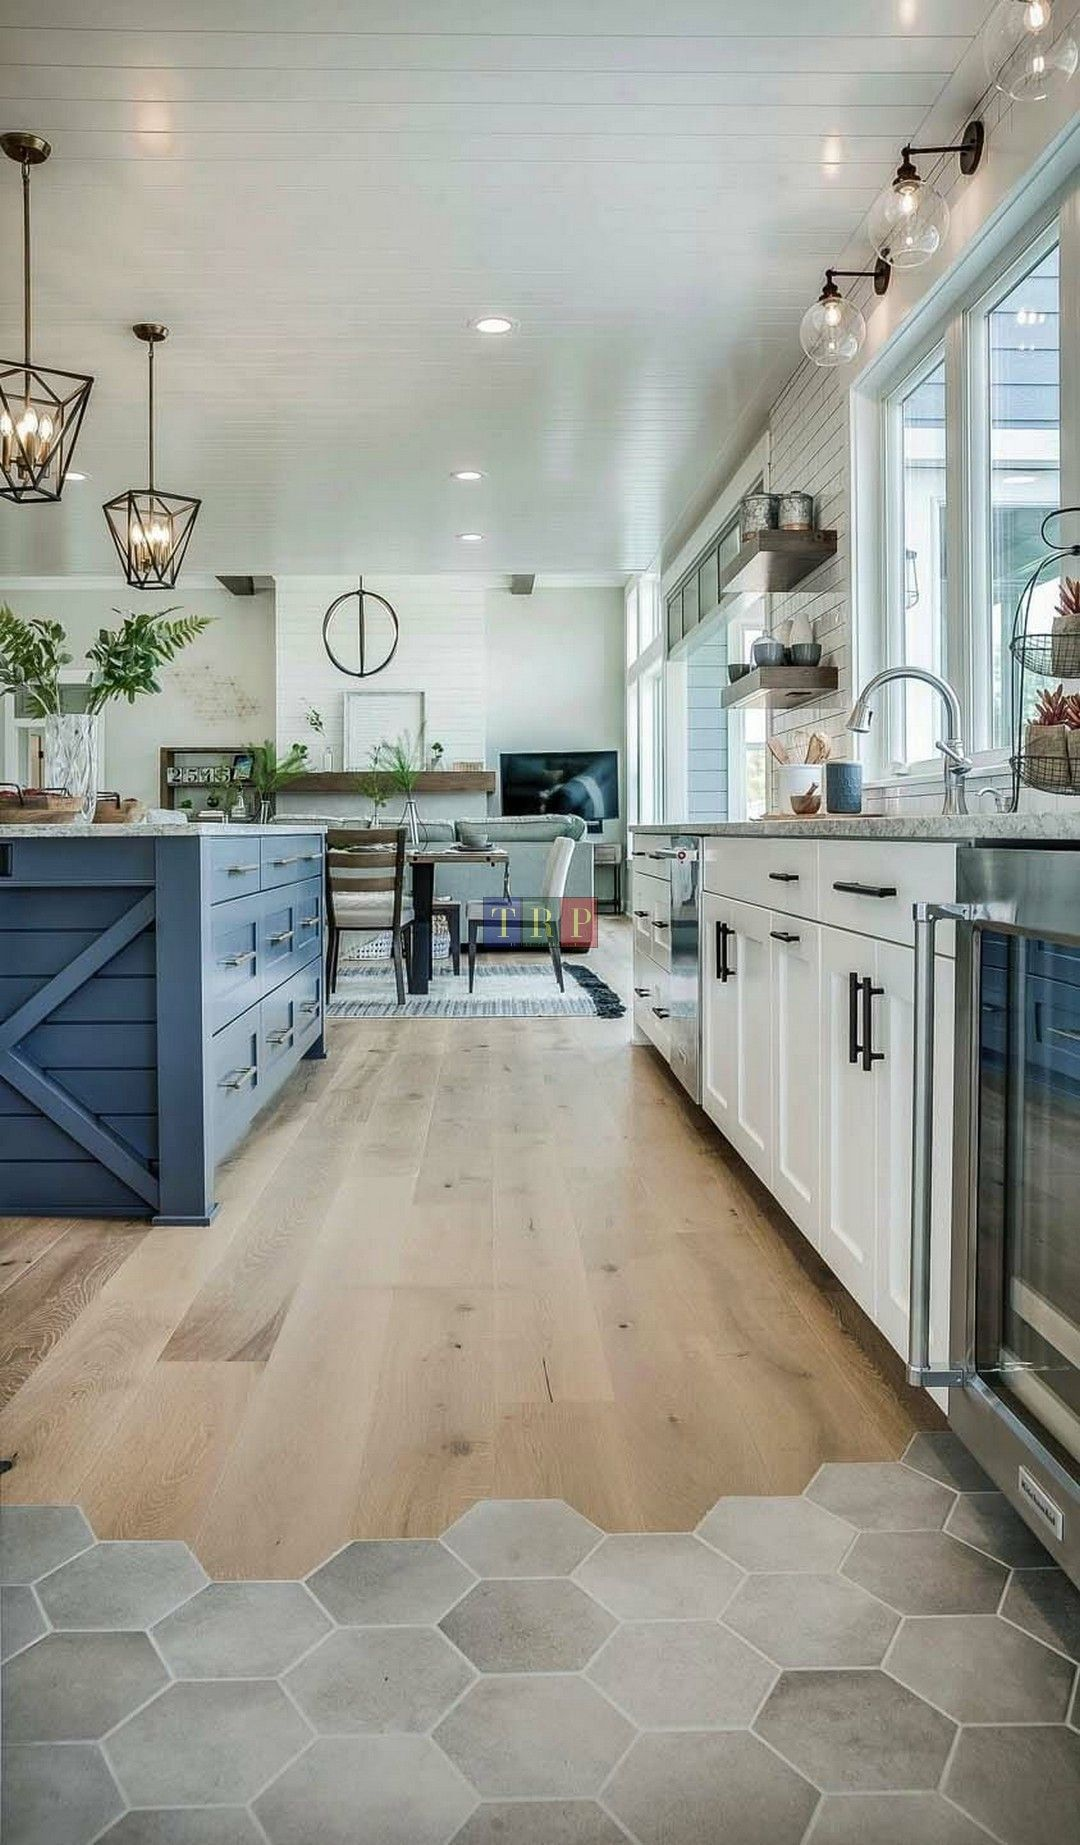 30 Kitchen Floor Tile Ideas Best Of Remodeling Kitchen Tiles In Modern Retro And Vintage Style With Images Kitchen Style Contrasting Kitchen Island Home Decor Kitchen